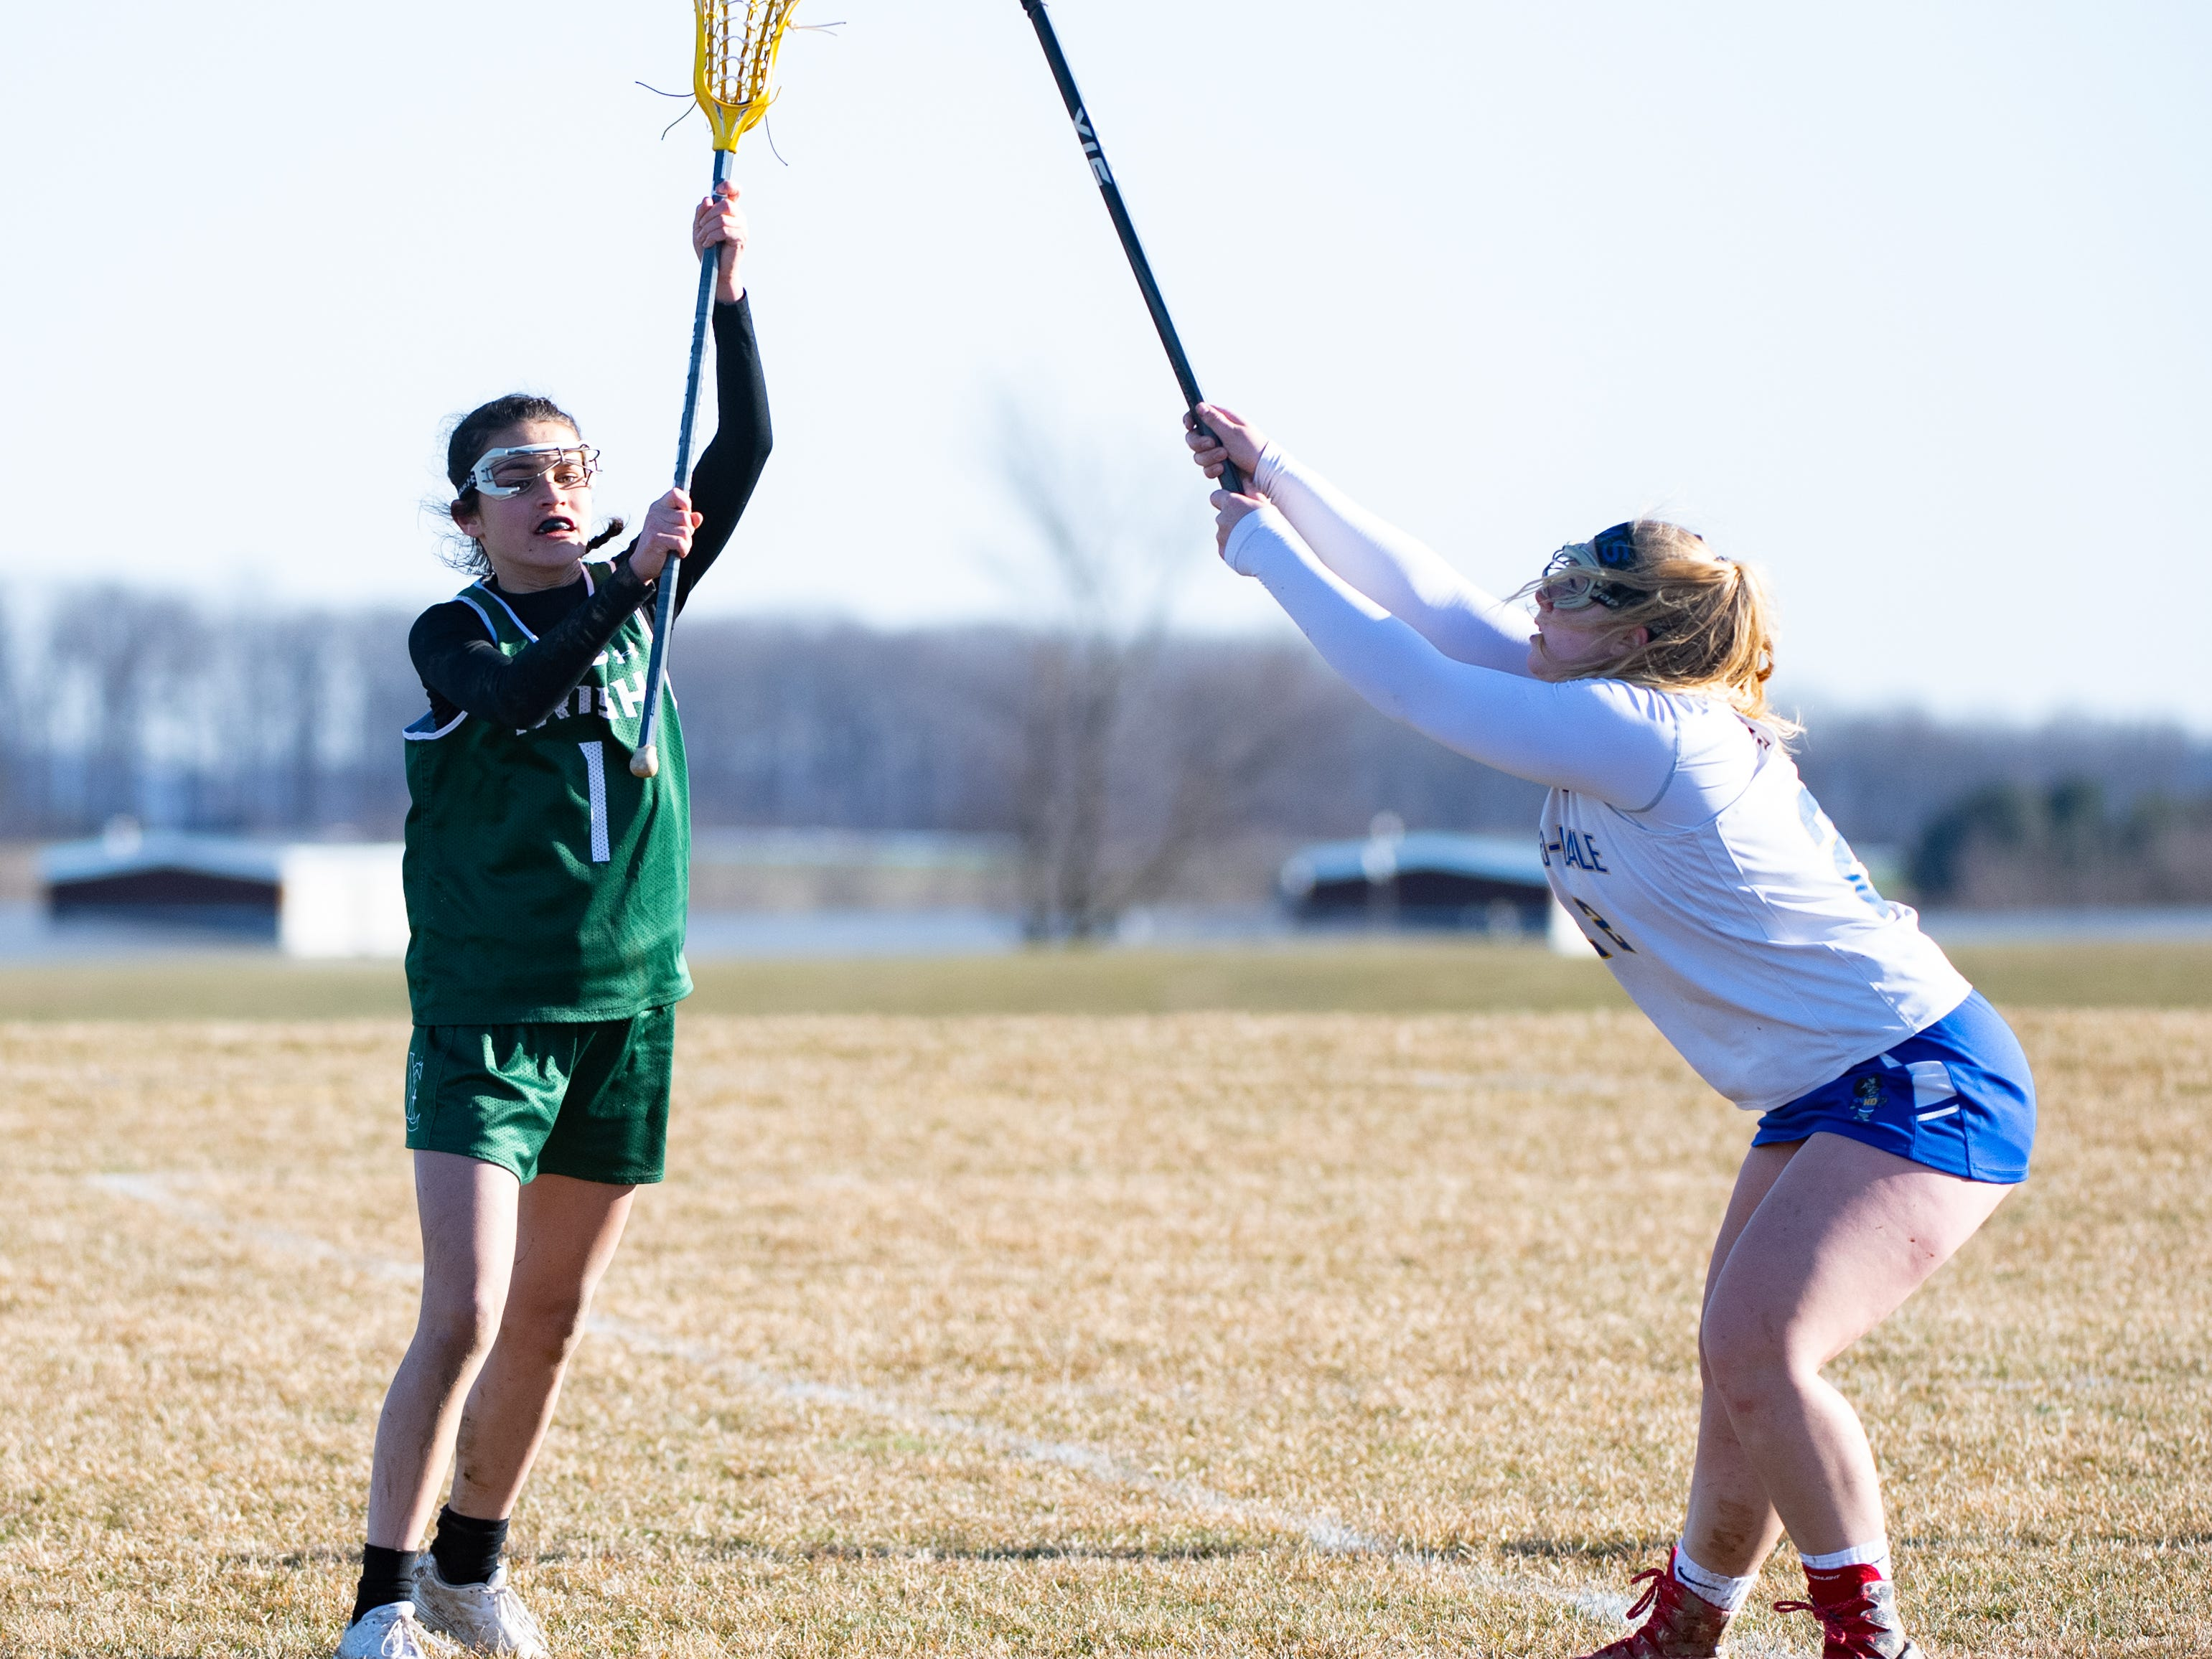 Olivia Staples (1) passes behind the net during the girls' lacrosse game between Kennard-Dale and York Catholic, March 26, 2019 at Kennard-Dale High School. The Fighting Irish defeated the Rams 10 to 9.